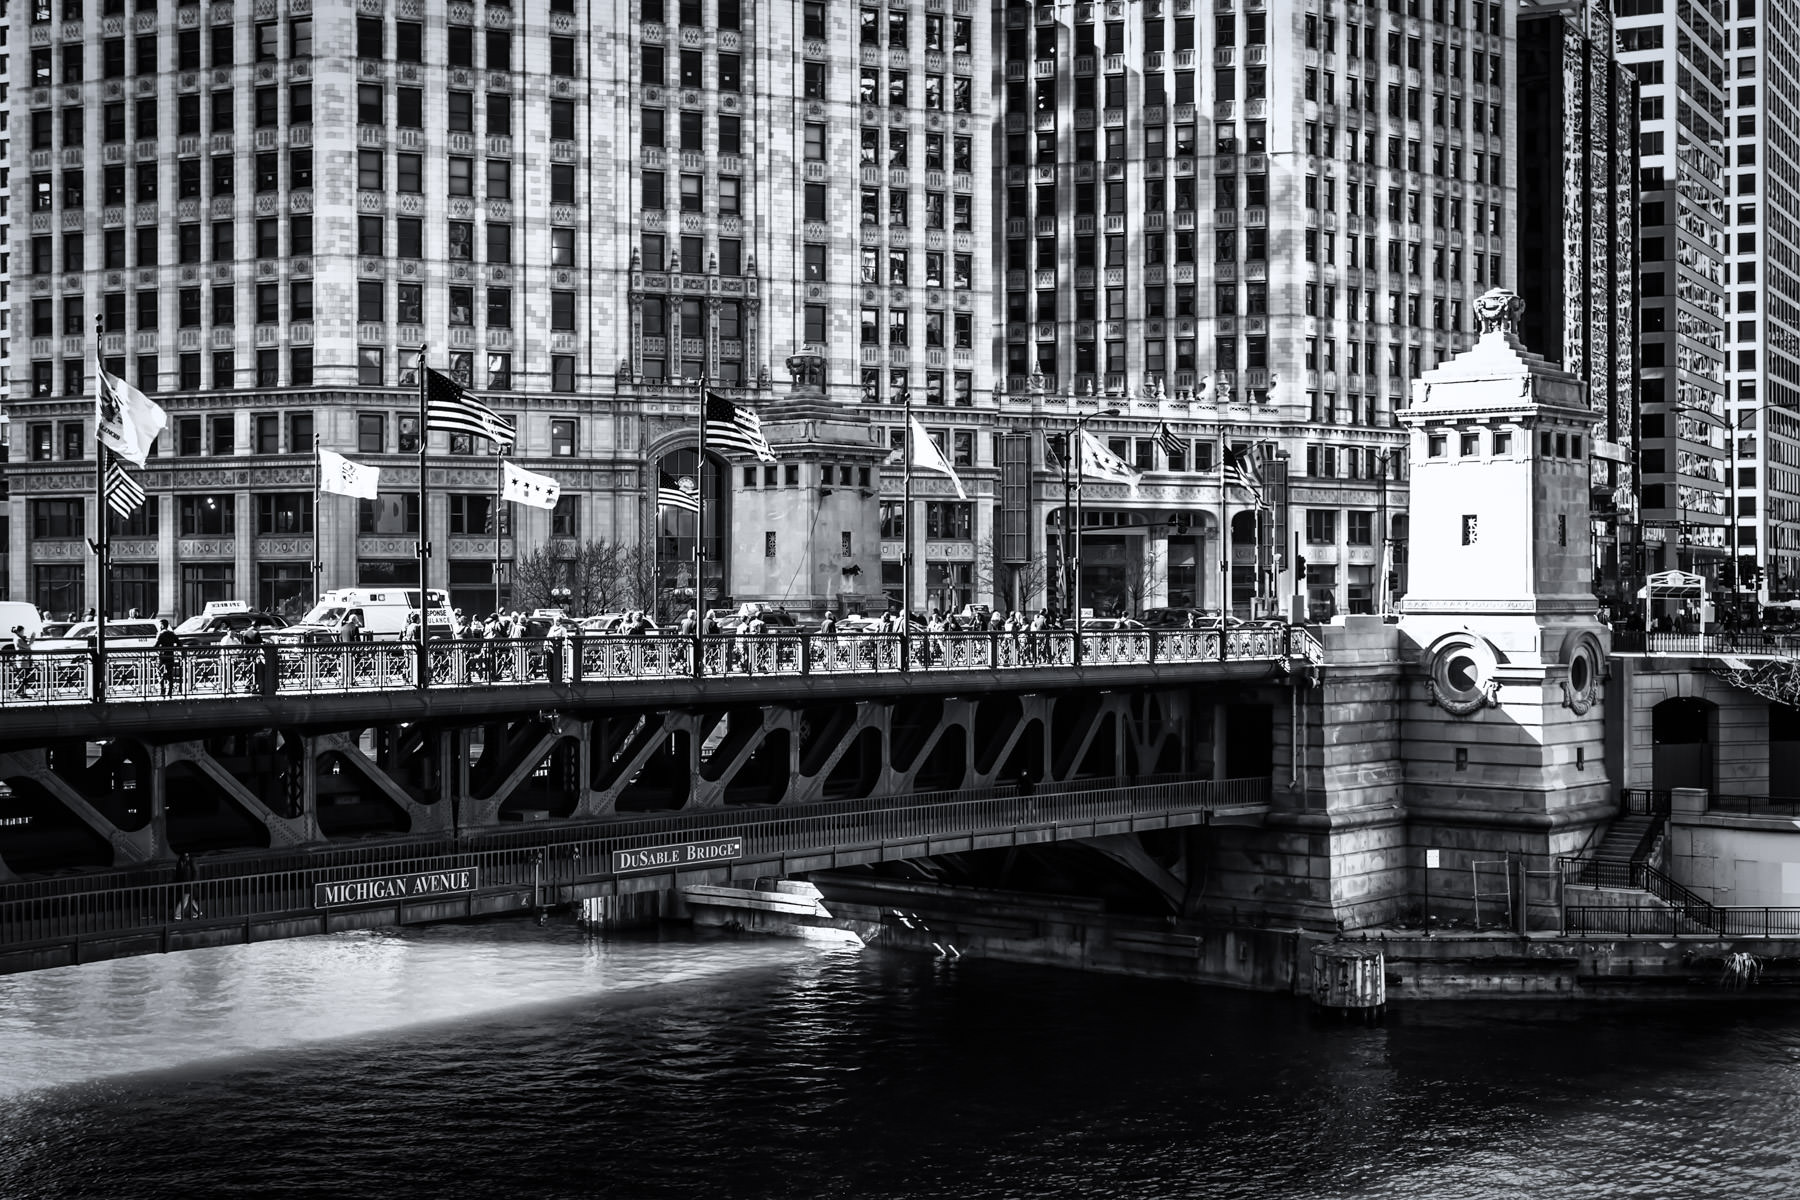 Chicago's busy Michigan Avenue spans the Chicago River on the DuSable Bridge, opened in 1920.